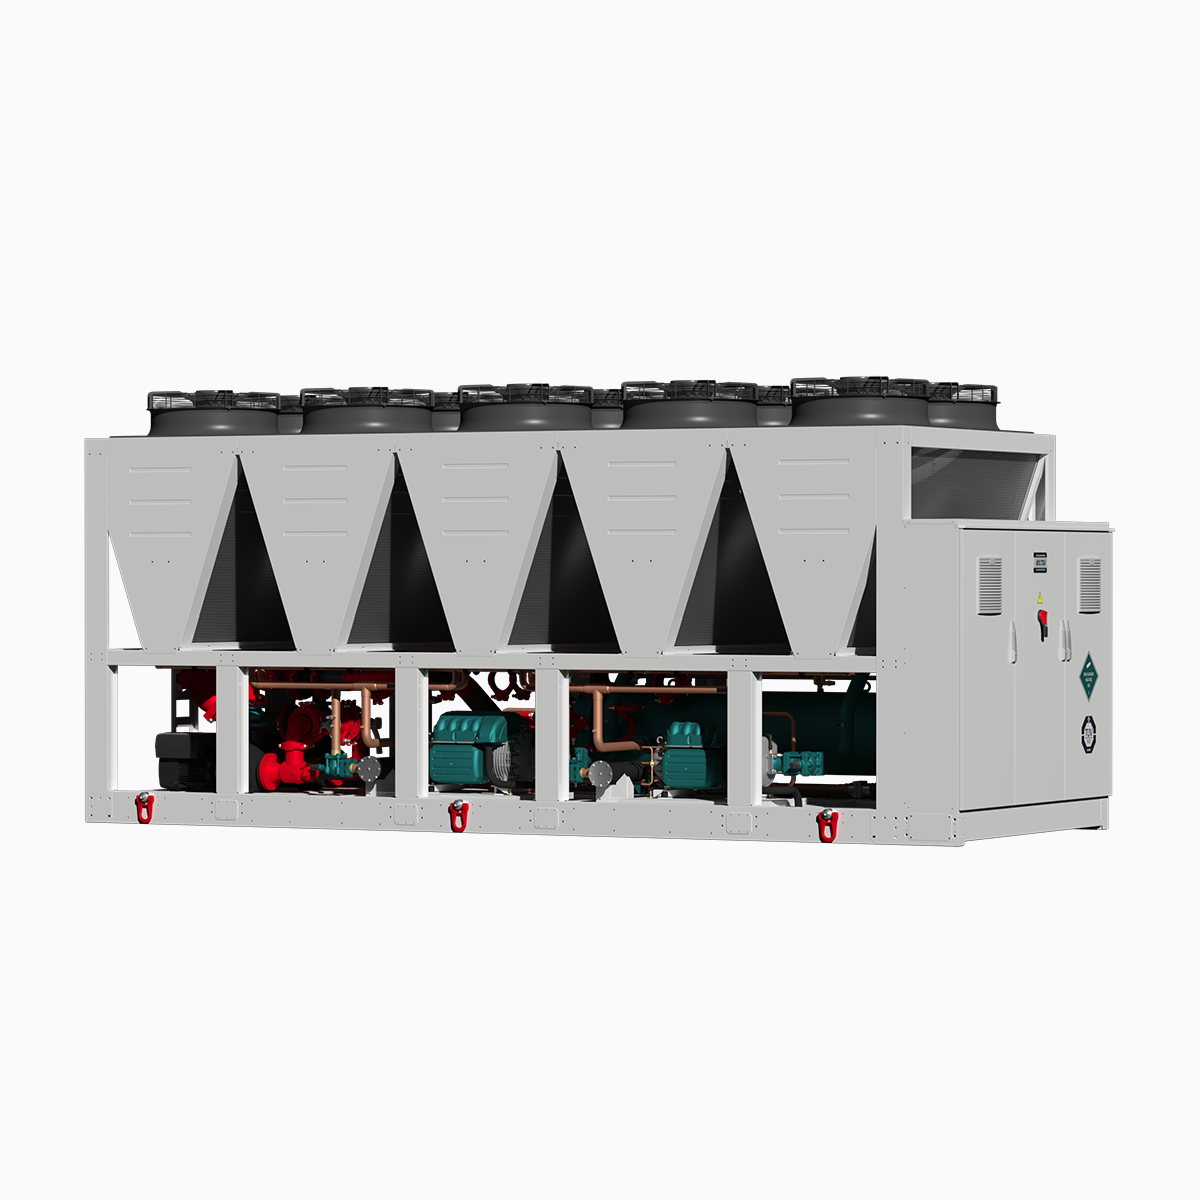 Kaltra to modernize its air-cooled Turbocor chiller range